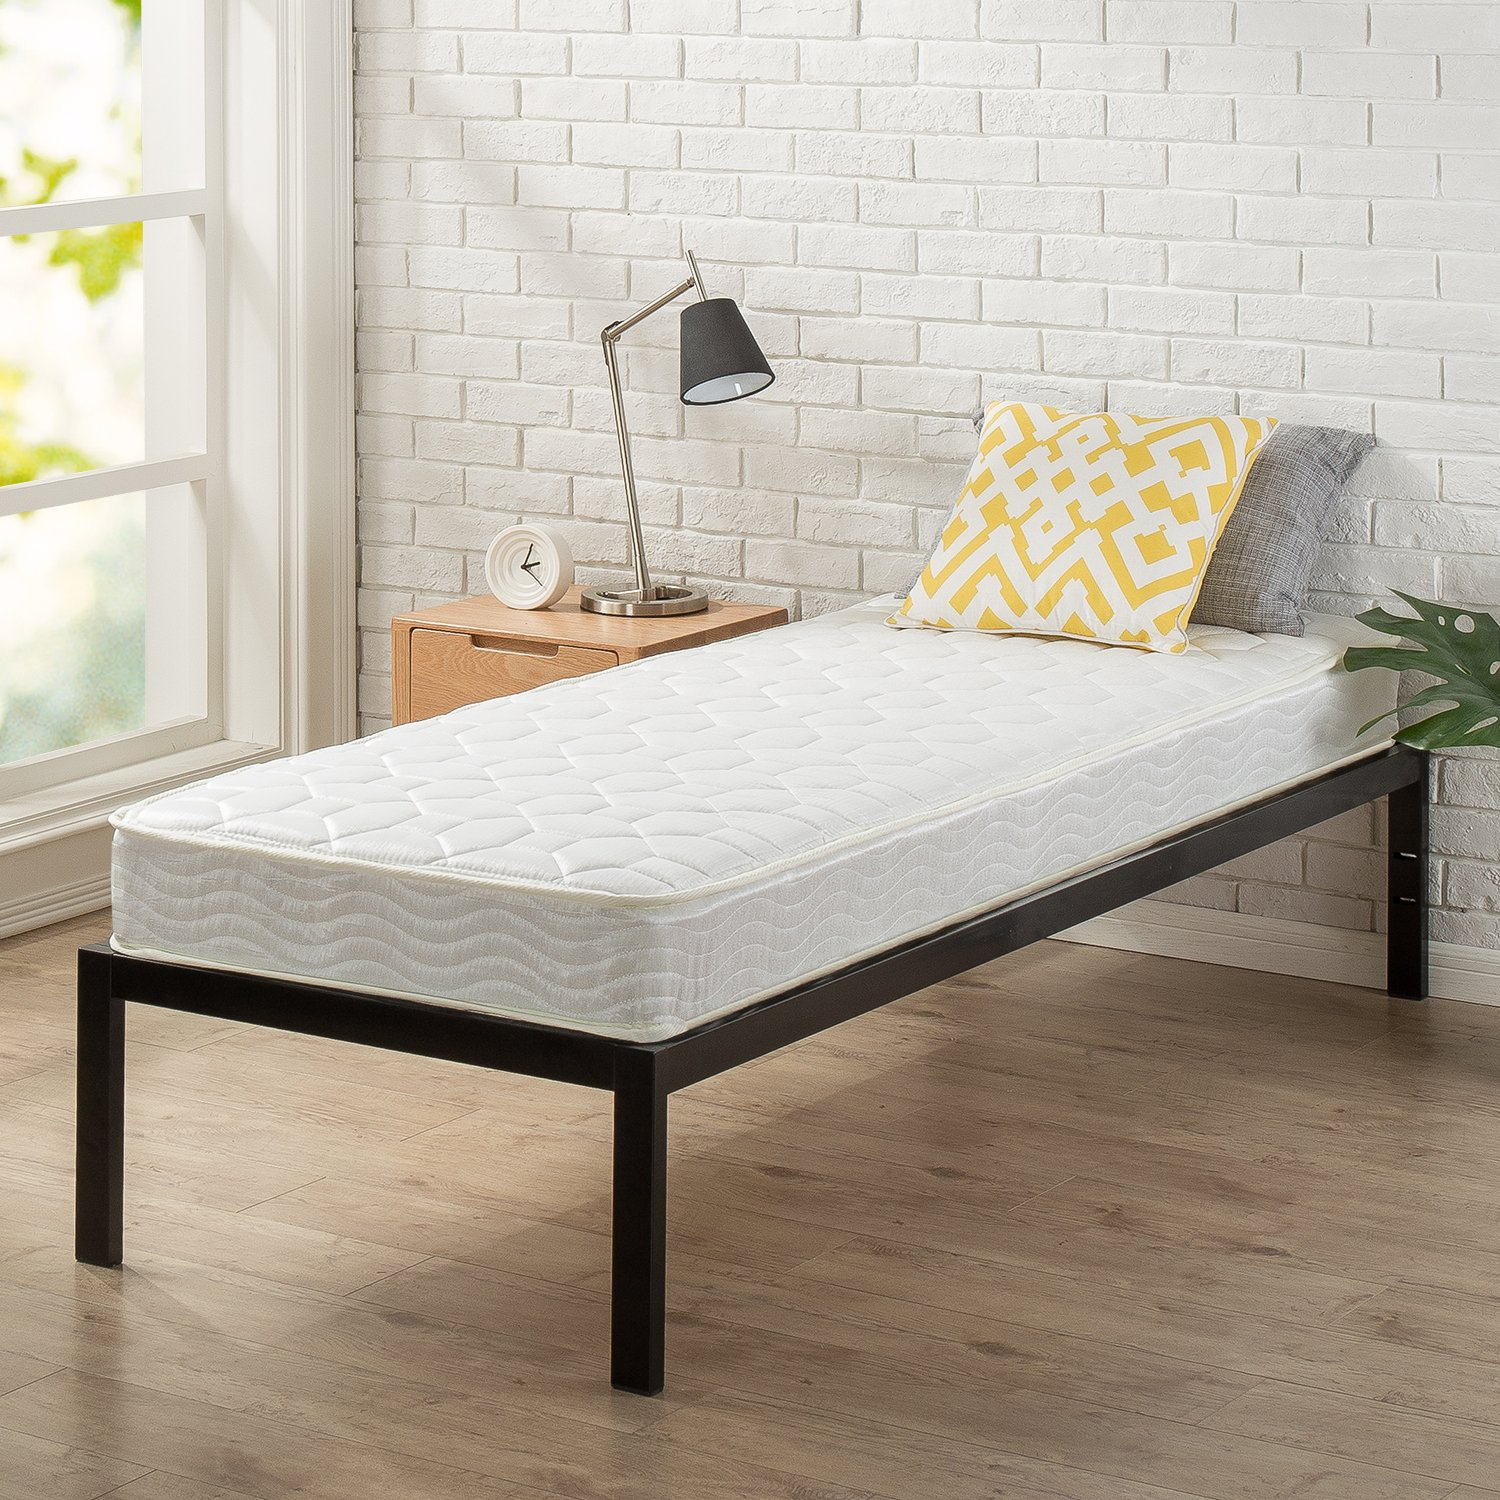 "Zinus Modern Studio 14 Inch Platform 1500 Metal Bed Frame, Cot size, 30"" x 75"", Mattress Foundation, no Boxspring needed, Wood Slat Support, Good Design Award Winner, Narrow Twin"